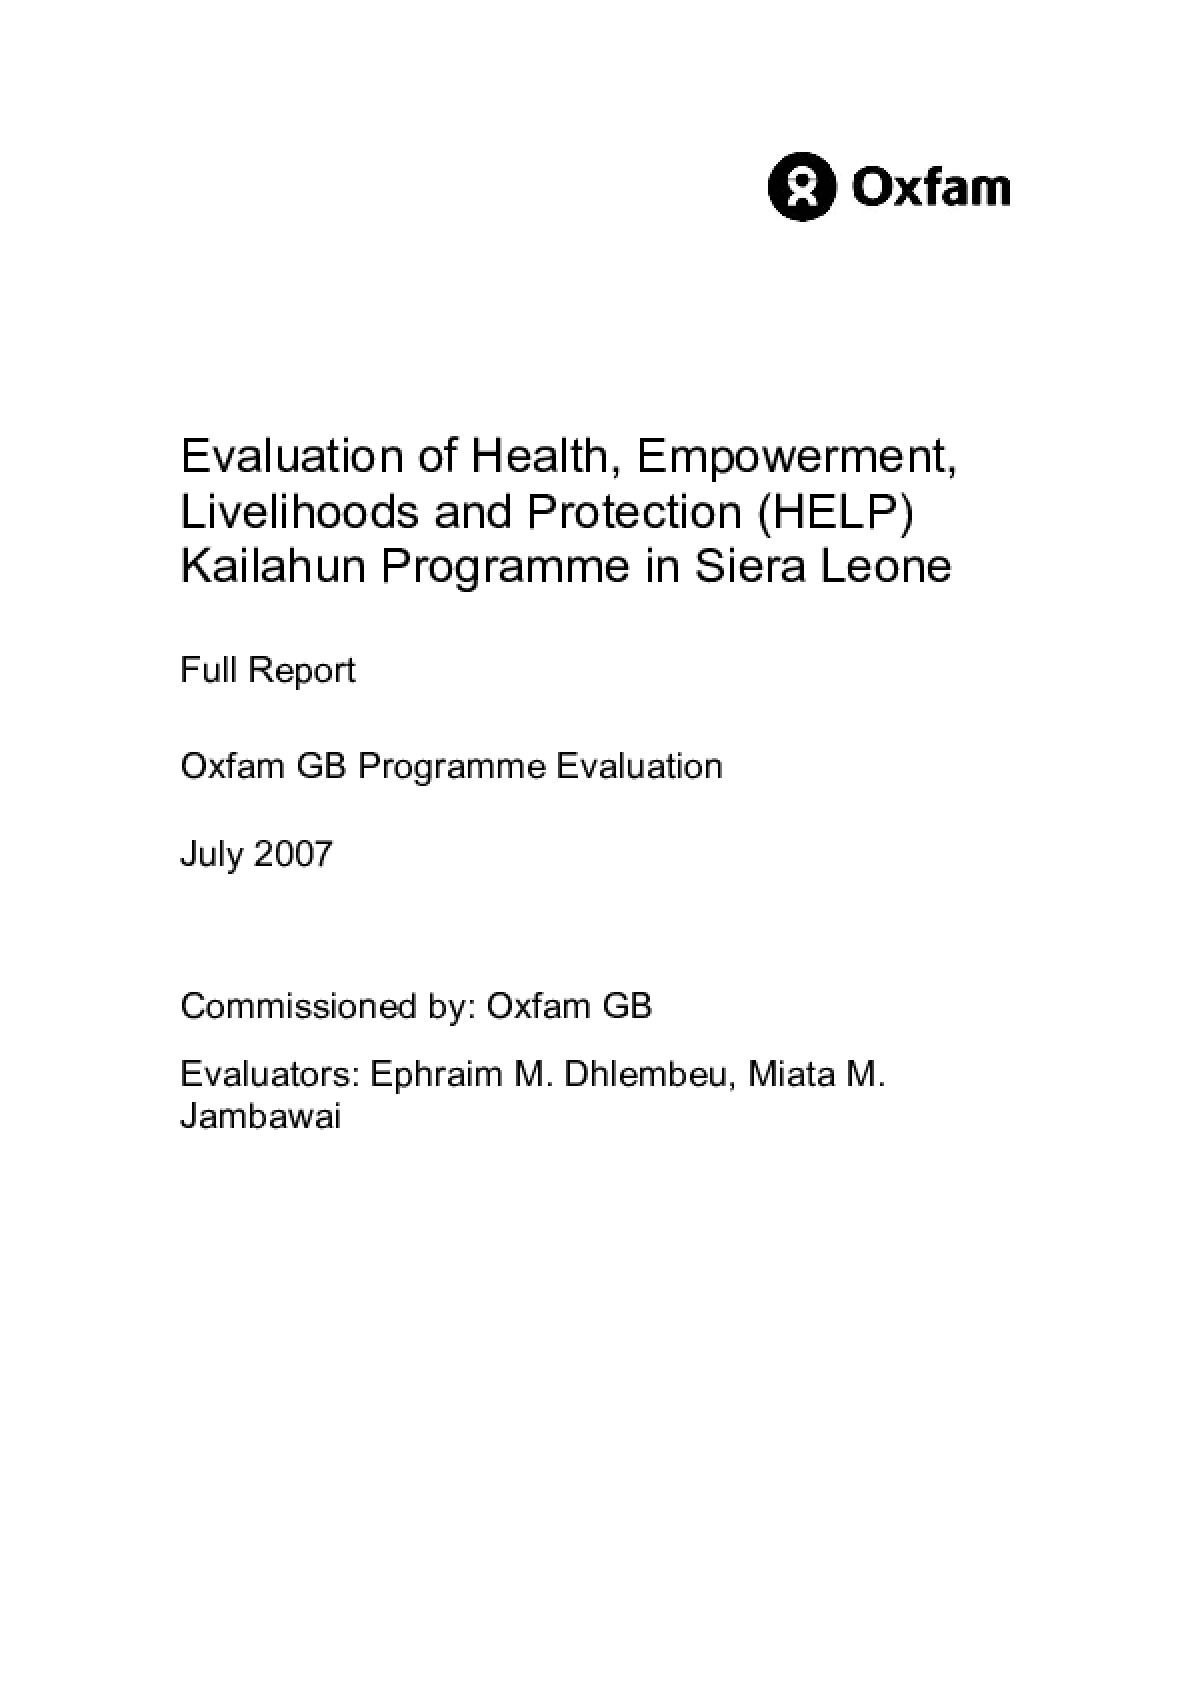 Evaluation of Health, Empowerment, Livelihoods and Protection (HELP) Kailahun Programme in Sierra Leone